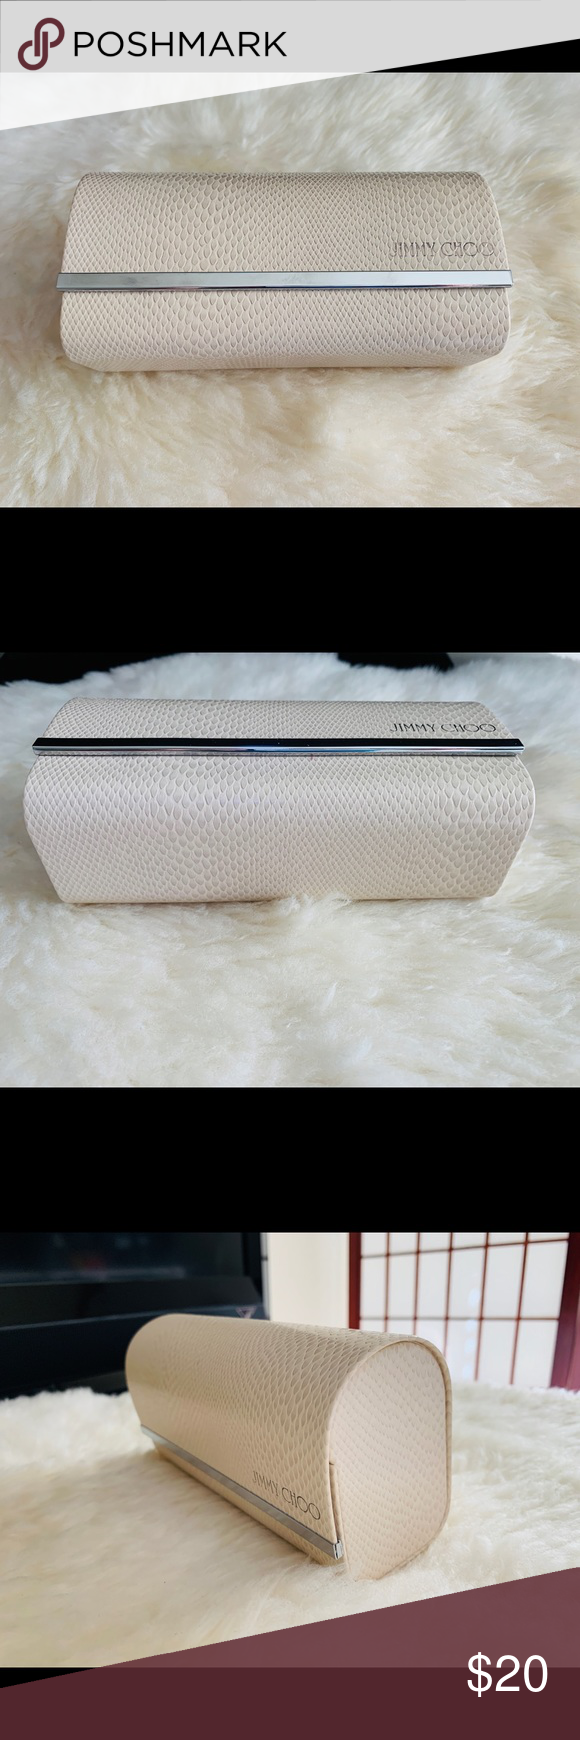 6fac40fc493a Jimmy Choo sunglasses case/ box Jimmy Choo sunglasses box, used few times.  No cleaning cloth. Can be used as beautiful clutch for a party.